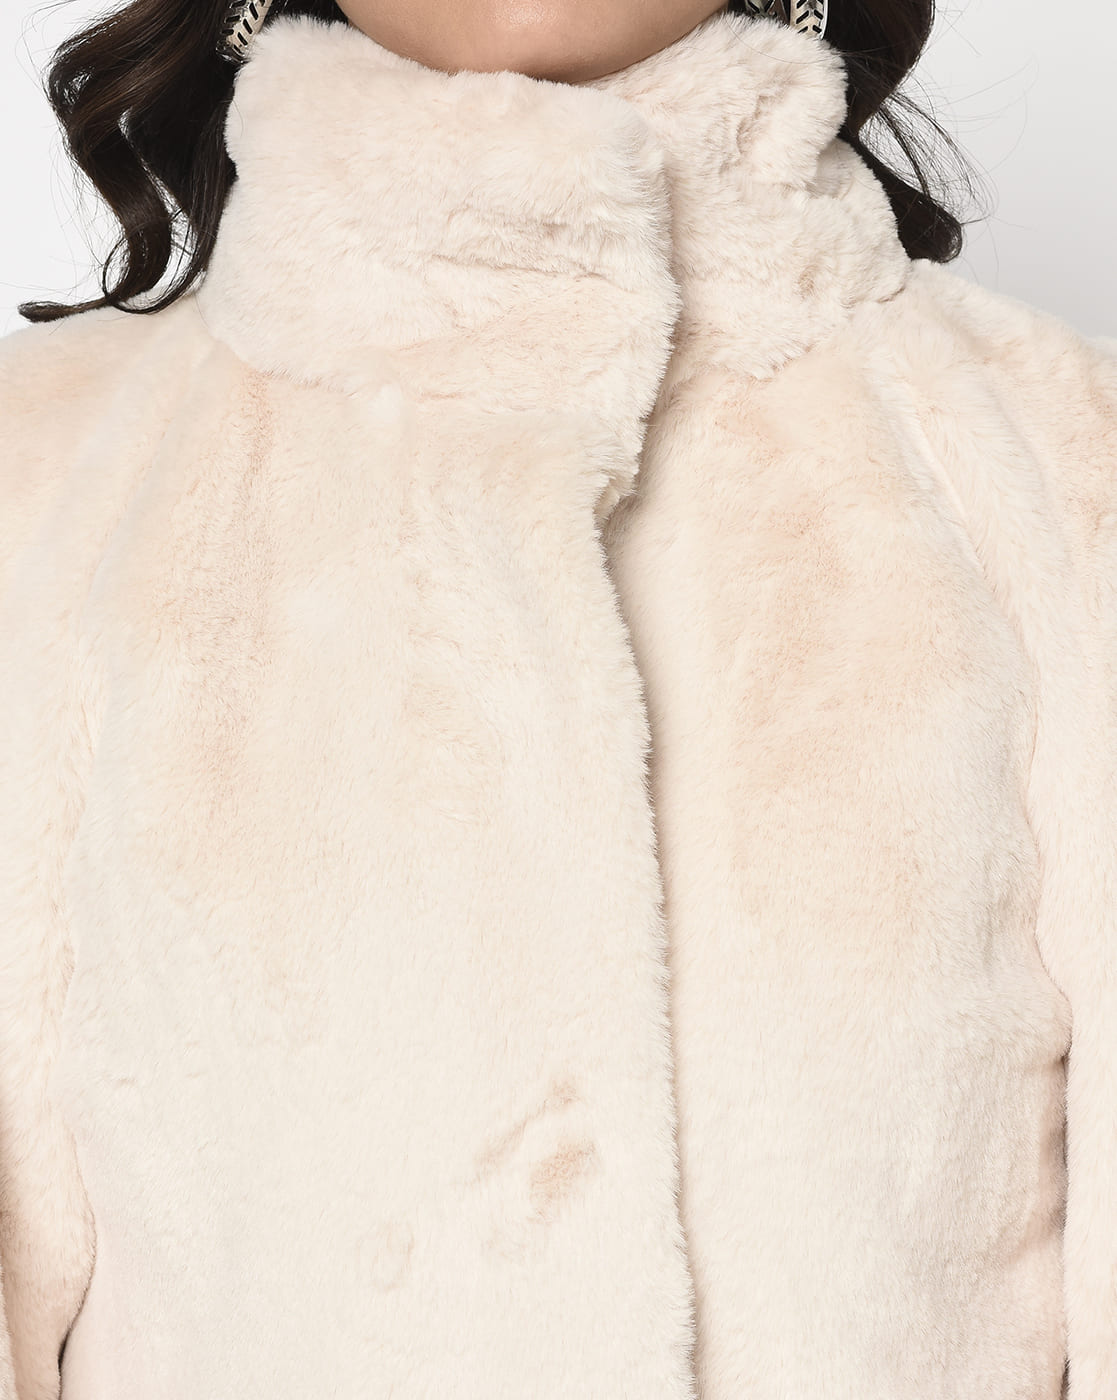 Off-White Fur Jacket